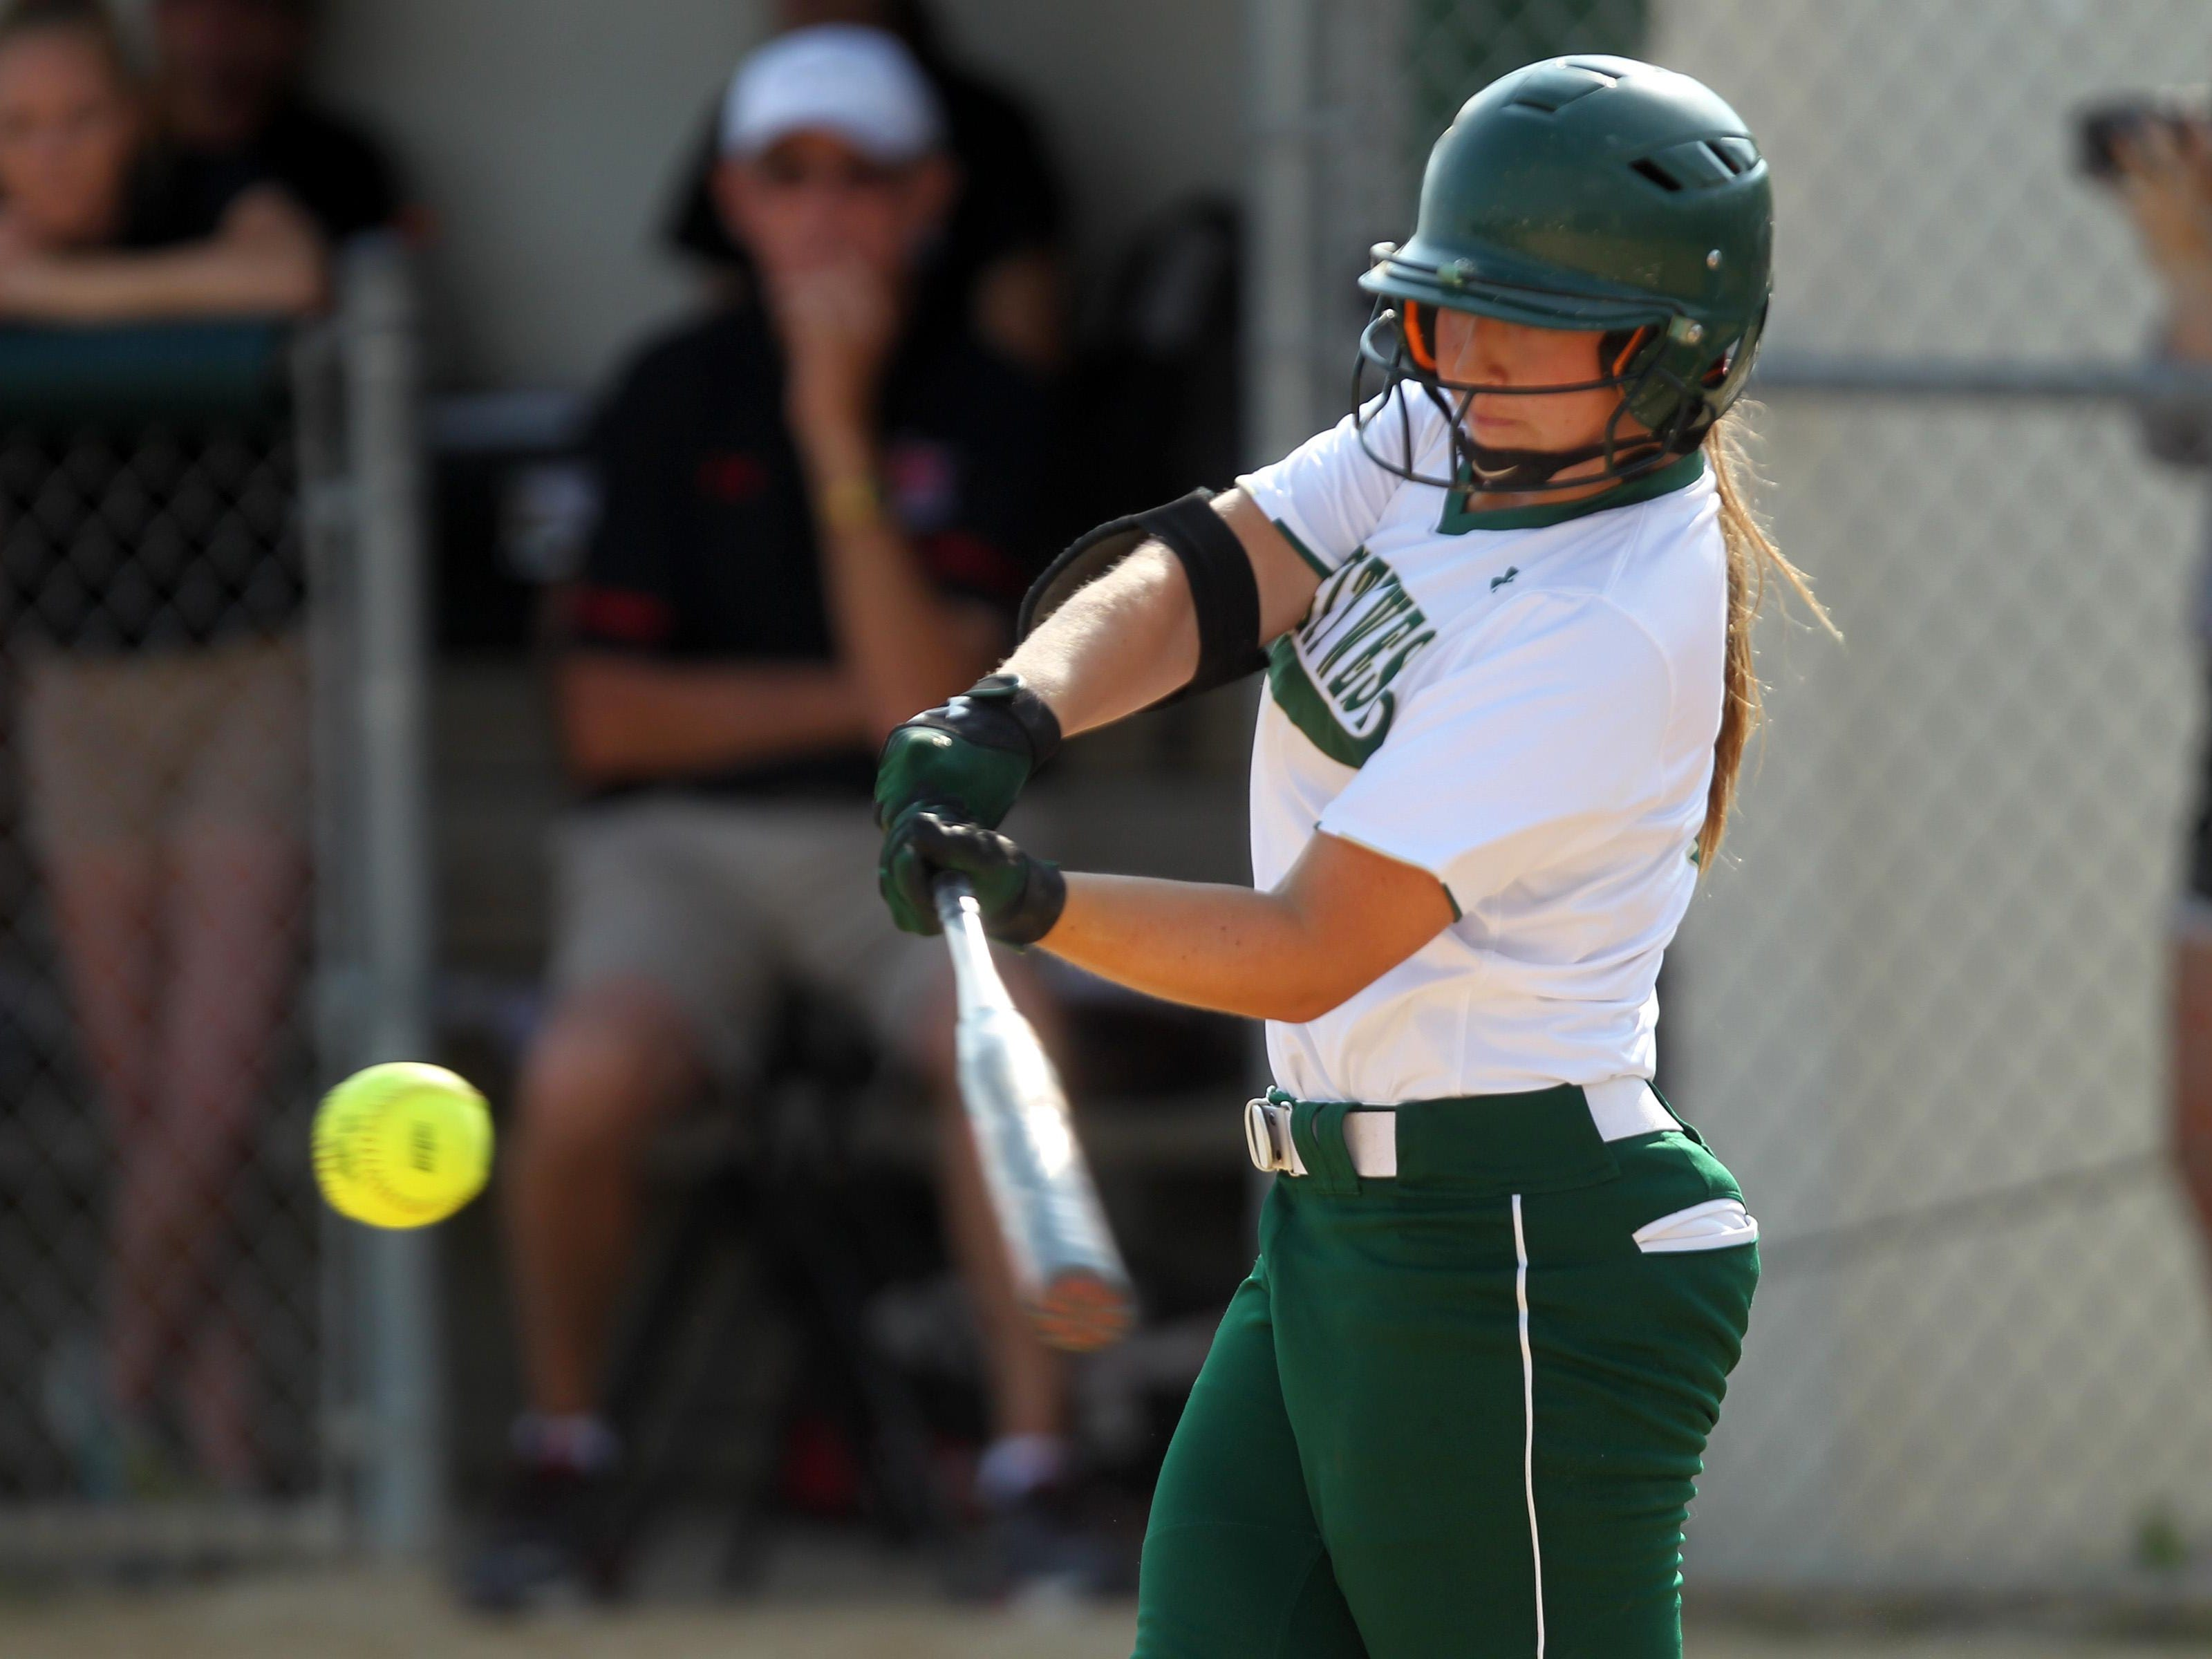 West High's Adara Opiola takes a swing during the Women of Troy's game against Linn-Mar on Thursday, July 9, 2015. David Scrivner / Iowa City Press-Citizen